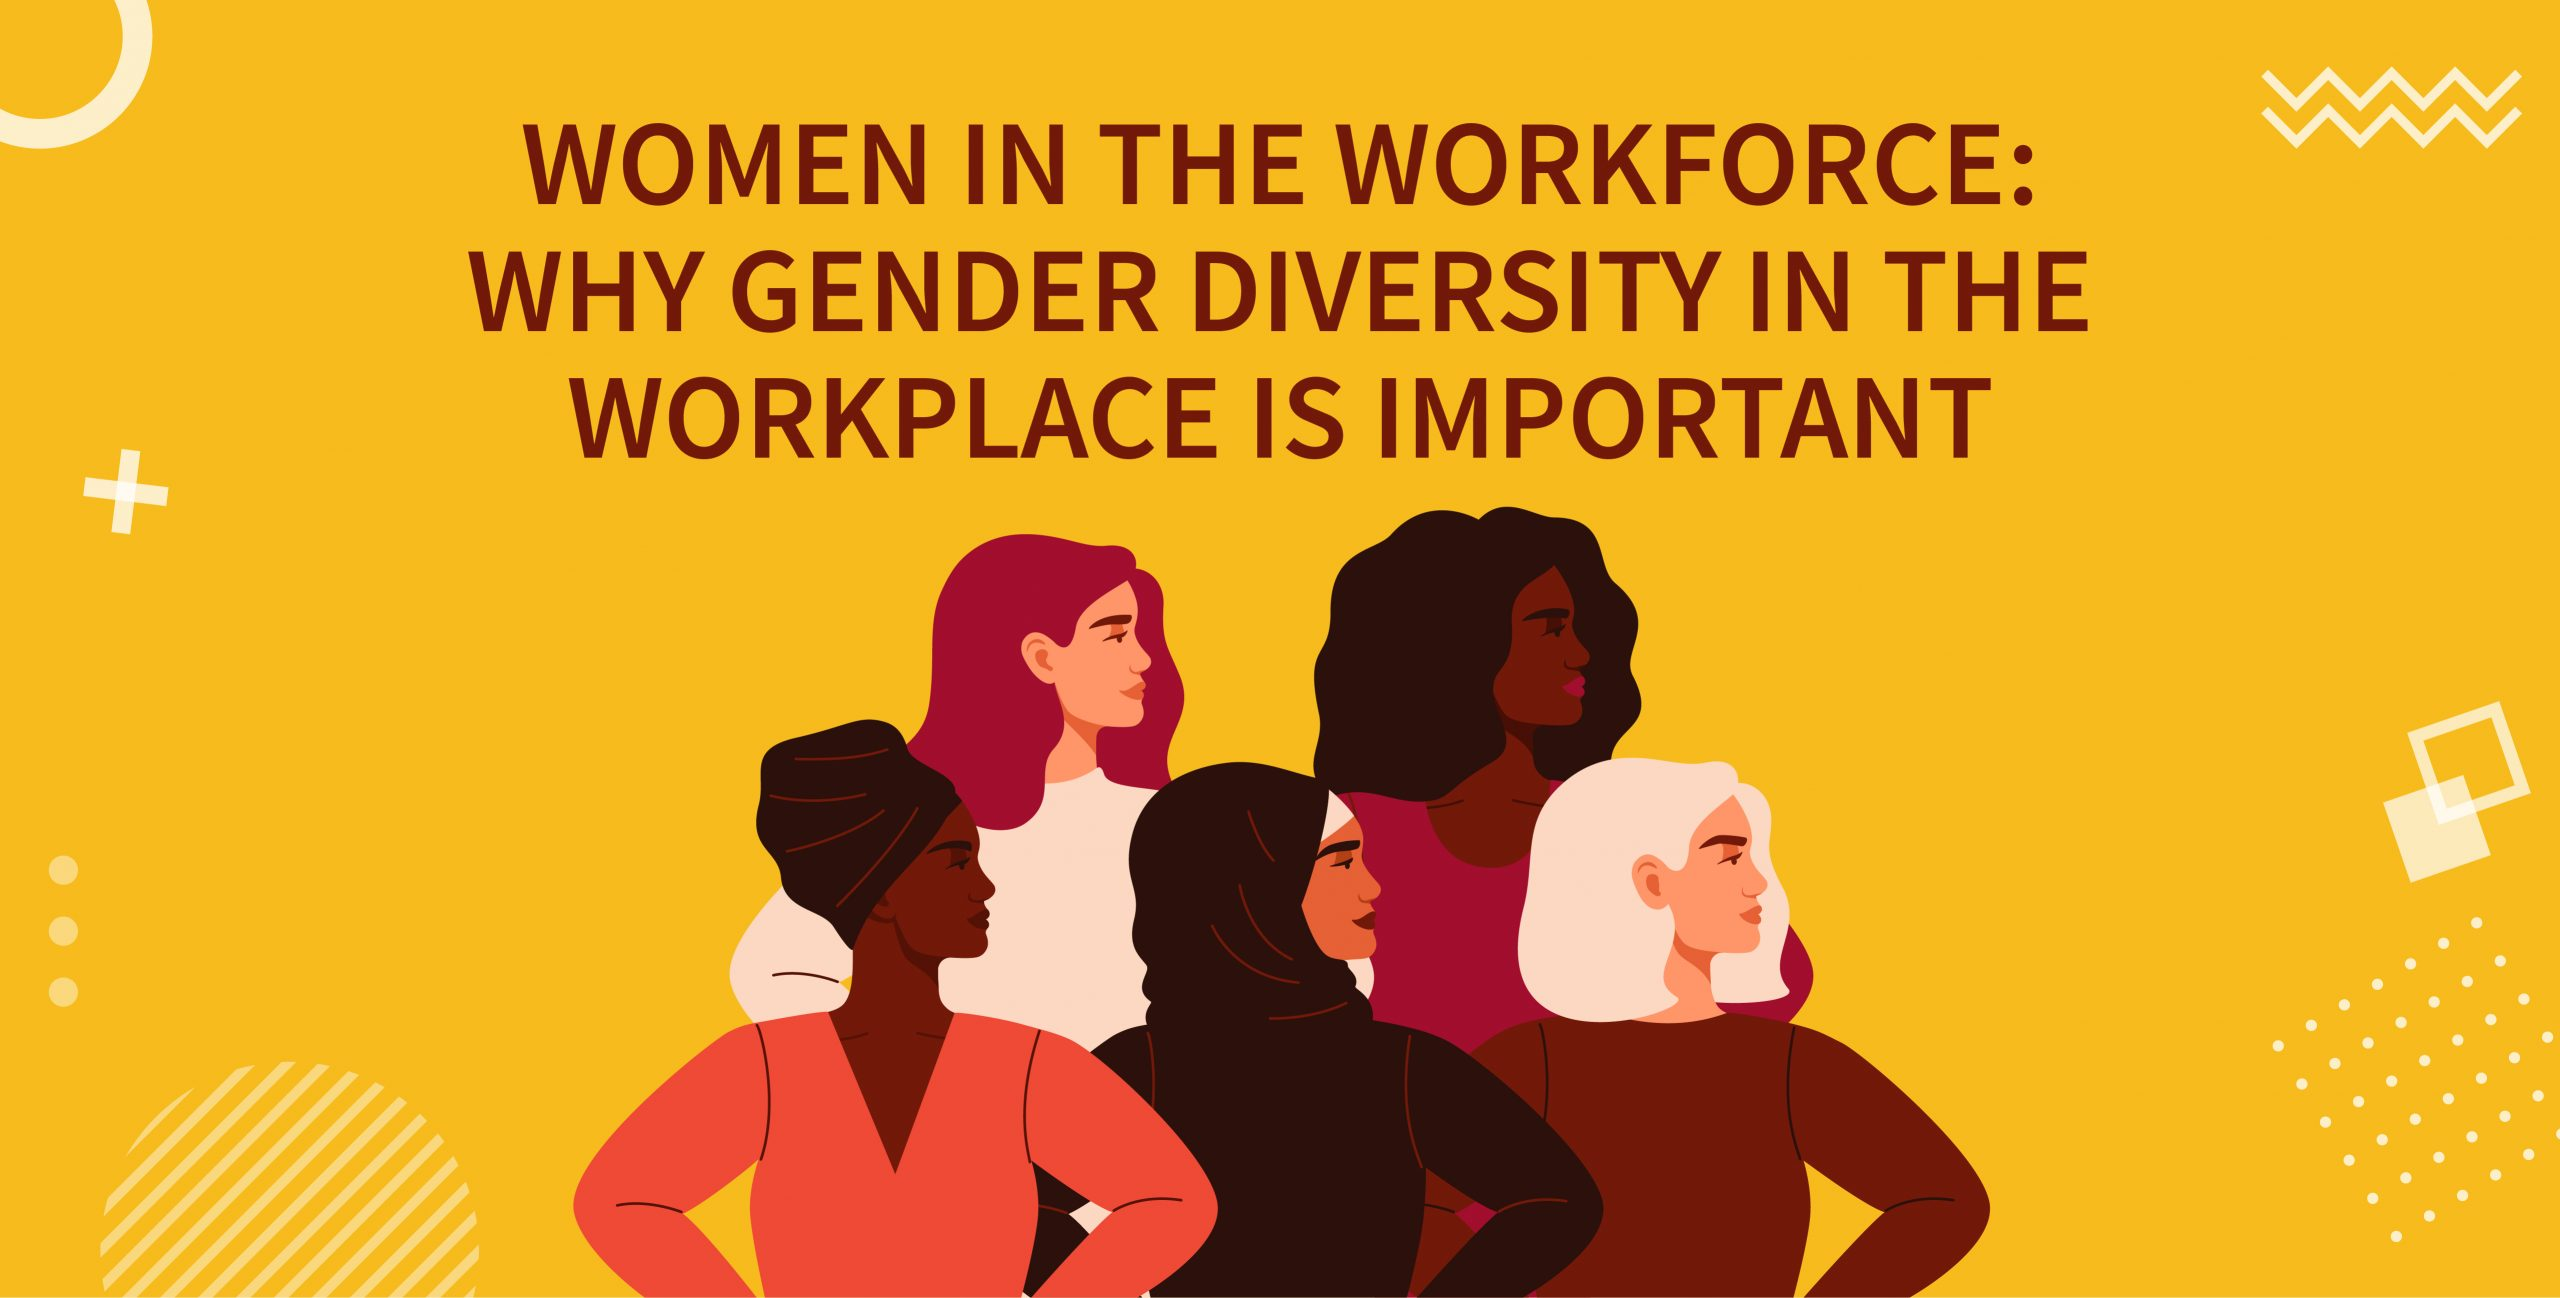 Gender Diversity in the Workplace